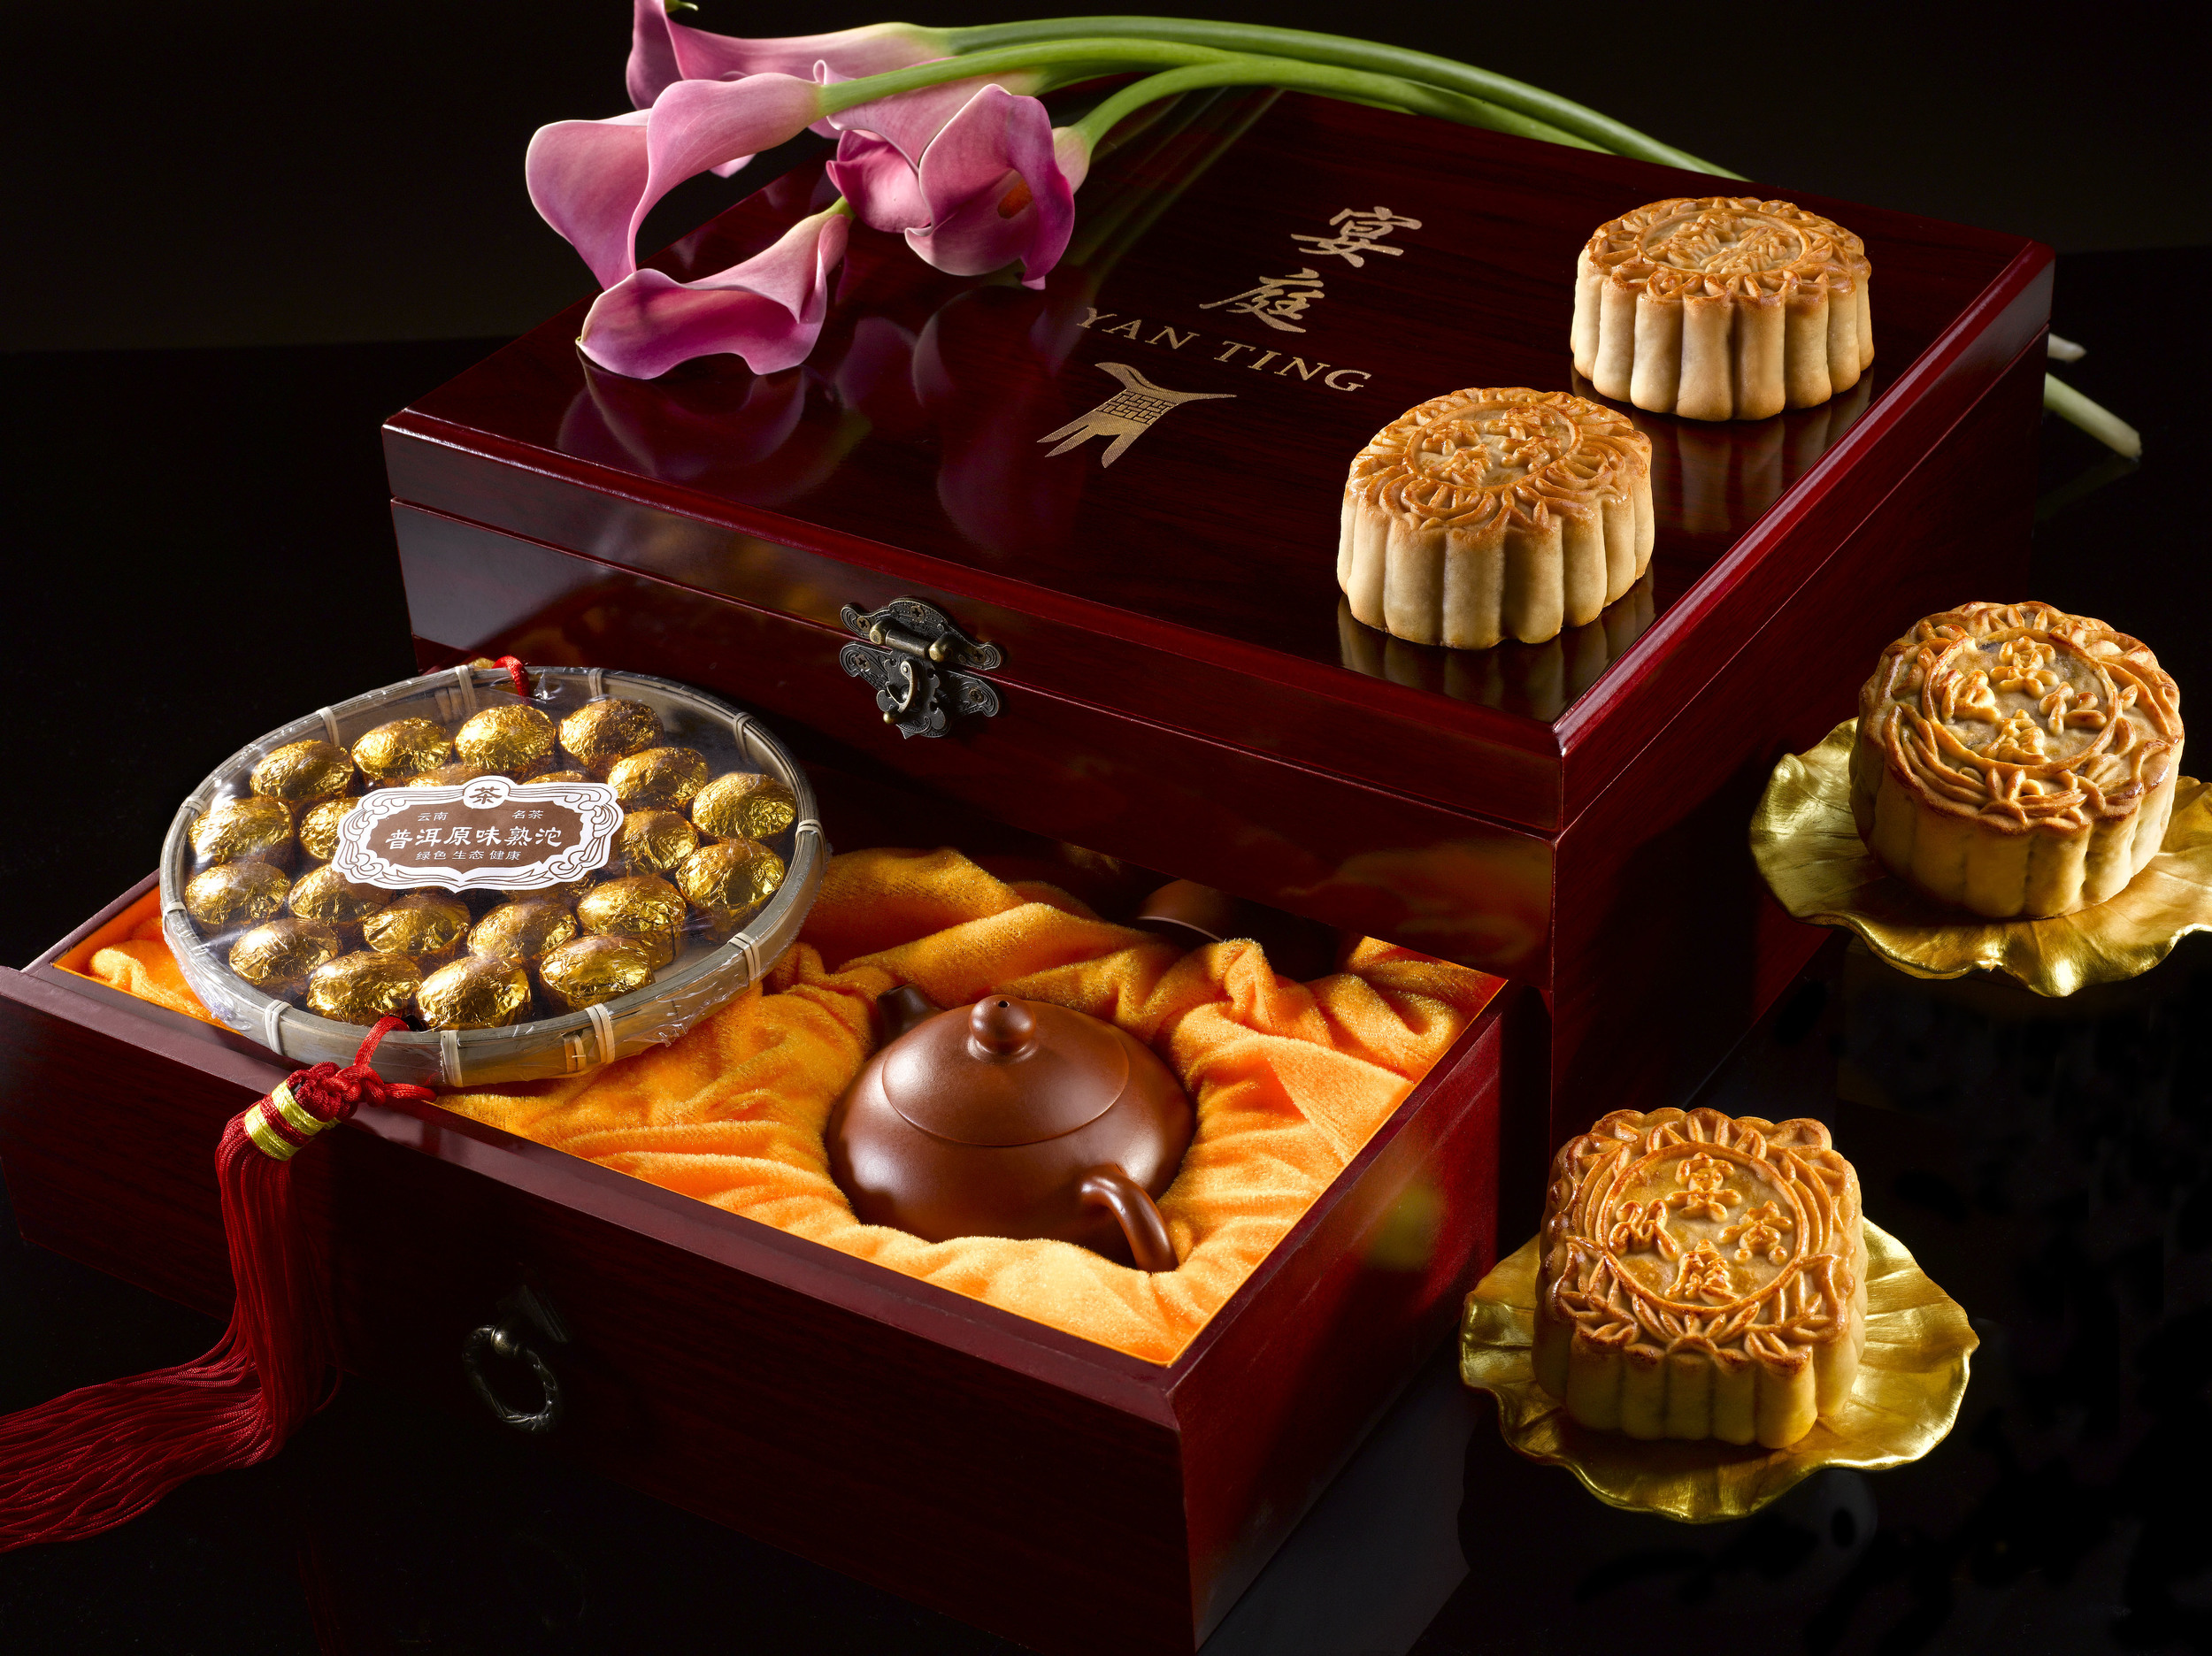 Four Traditional Baked Mooncakes Premium Gift Set (from S$147+) | Photo Credit: The St. Regis Singapore